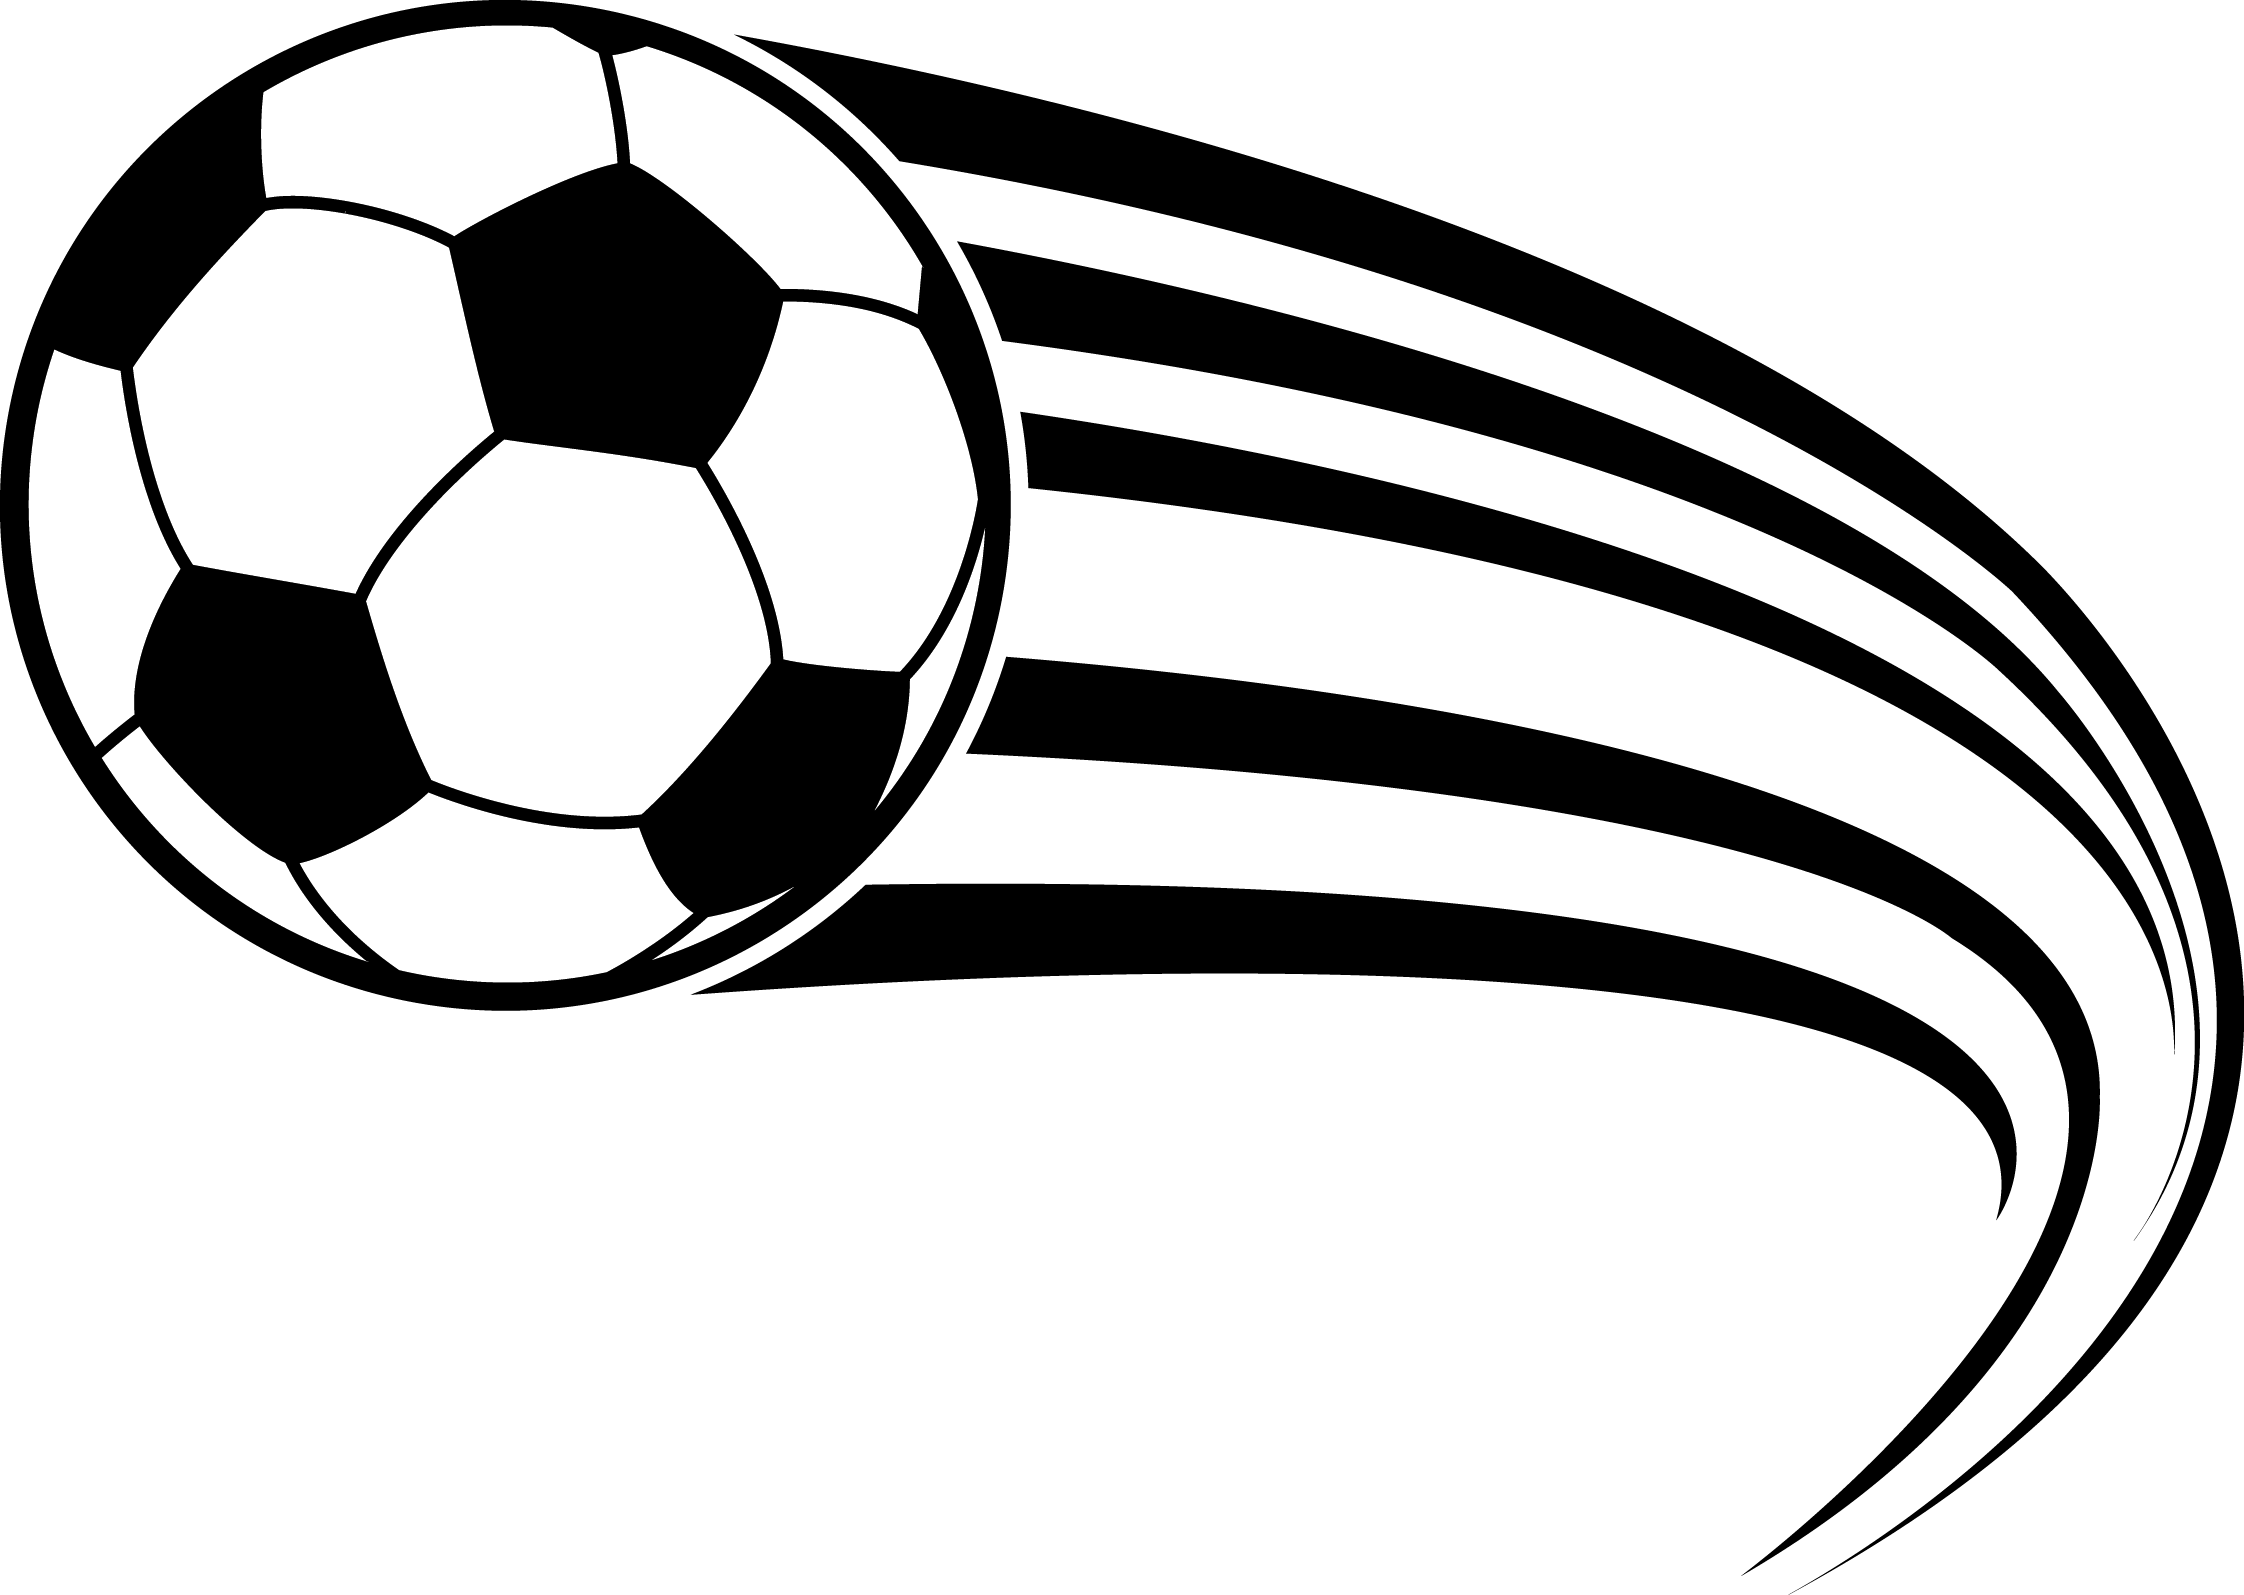 Football Black And White Clipart.